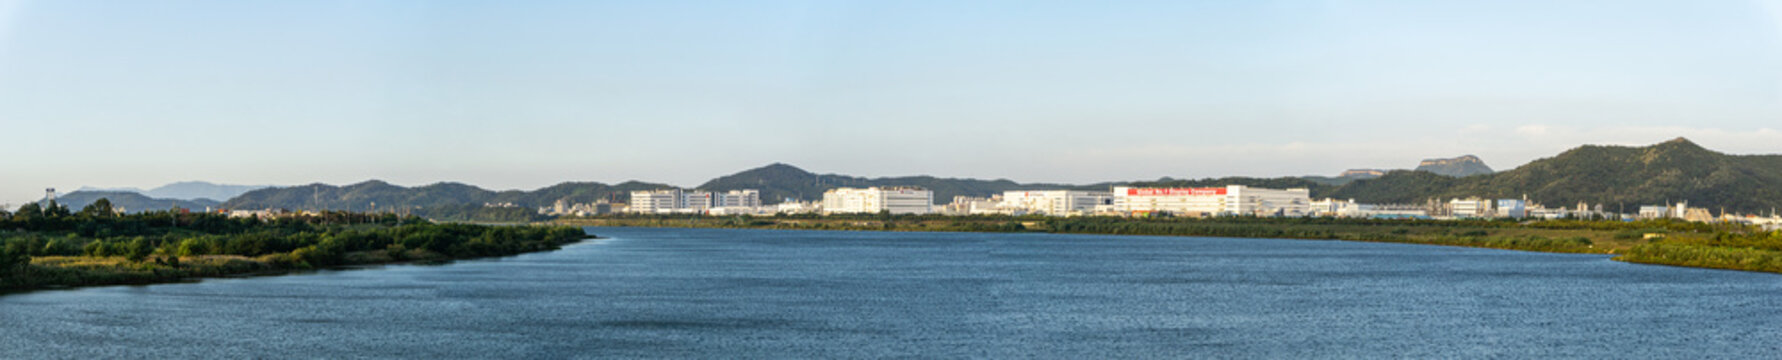 Panoramic view of the both side of Nakdong river in Gumi-Si, South Korea.